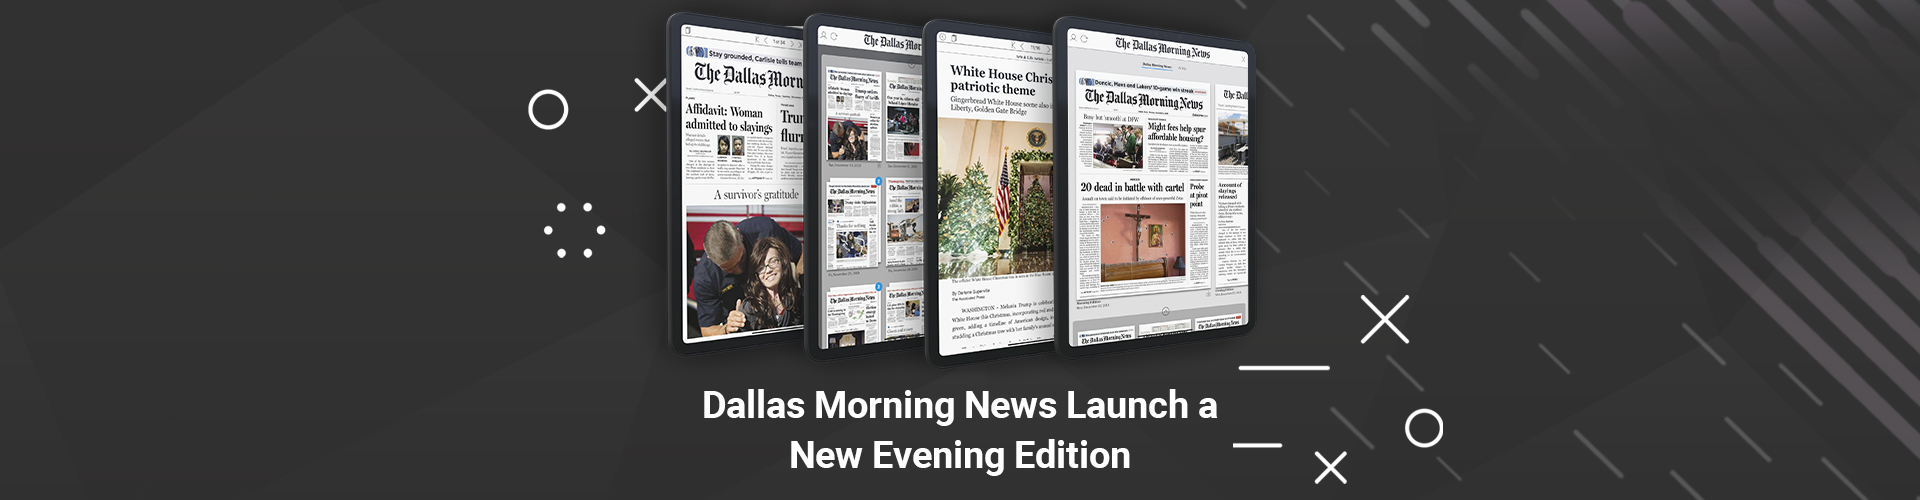 Press Release: The Dallas Morning News Launches Evening Edition with PageSuite